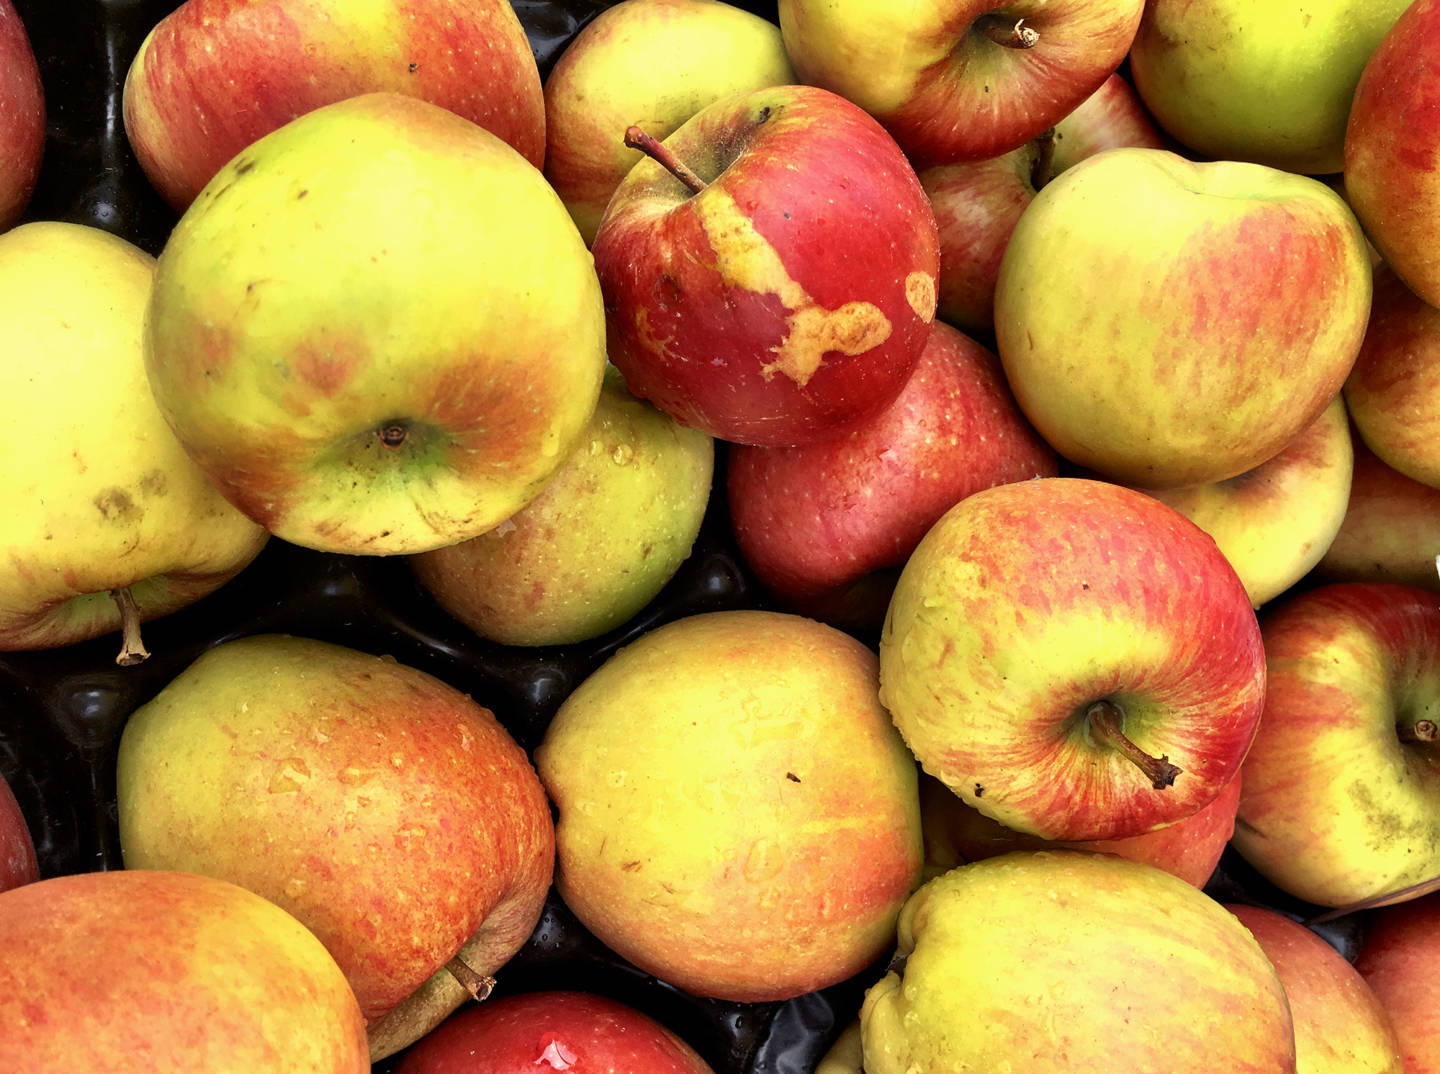 Beneath An Ugly Outside, Marred Fruit May Pack More Nutrition